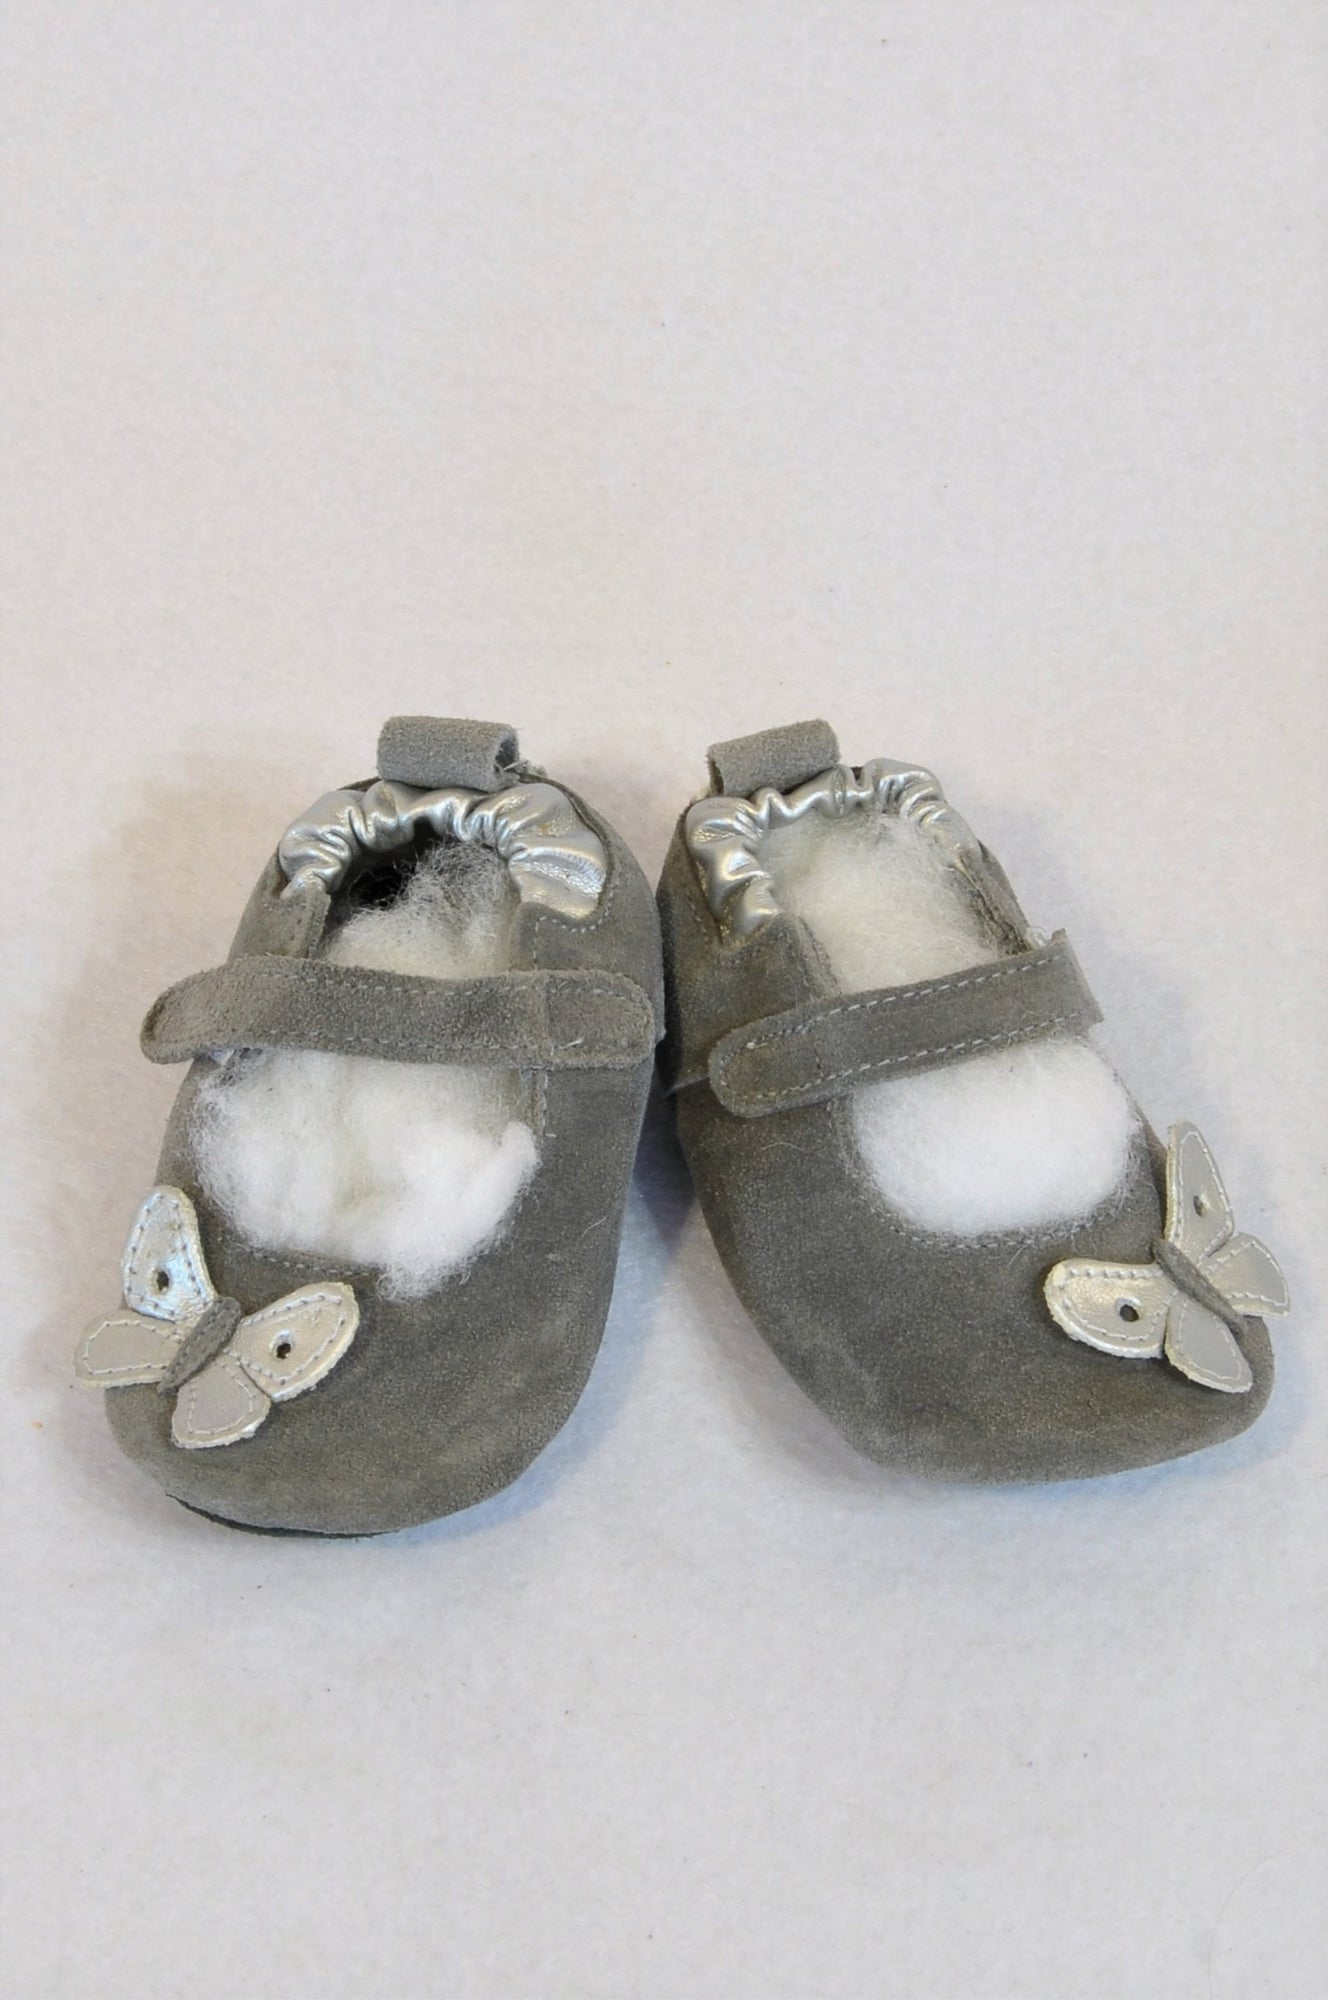 New Shooshoos Size 2/3 Grey Suede Silver Butterfly Velcro Strap Soft Sole Shoes Girls 6-12 months